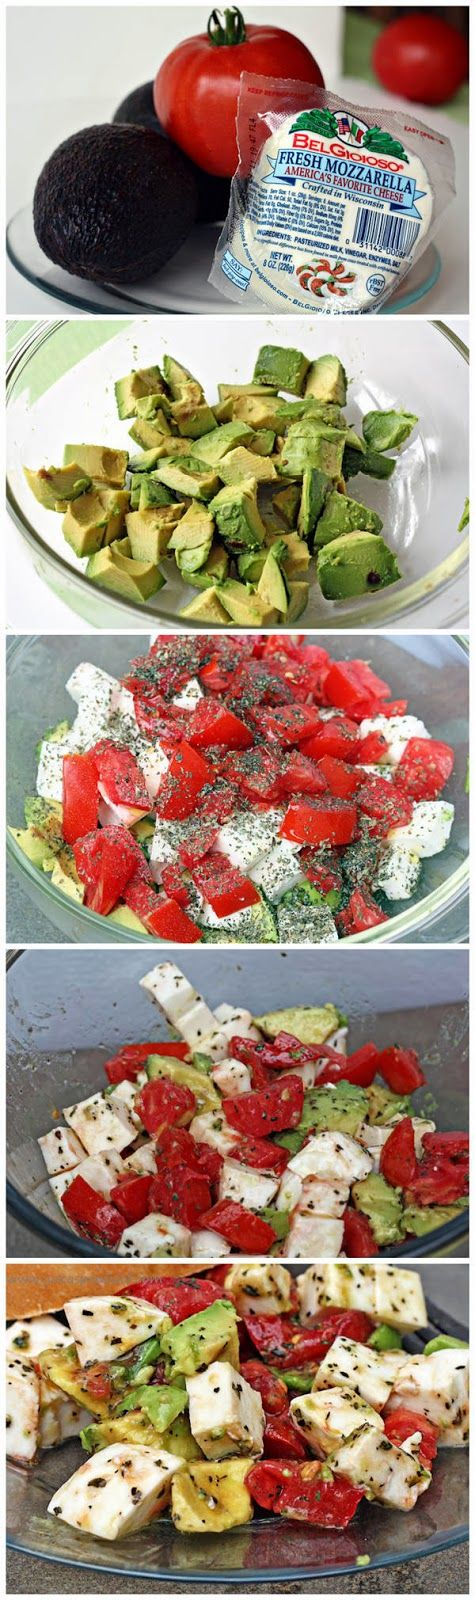 Avocado, Tomato, Mozzarella Salad w/ olive oil, basil, salt and pepper. : Share Food Pics, Explore mouth watering food pictures      Ingredi...